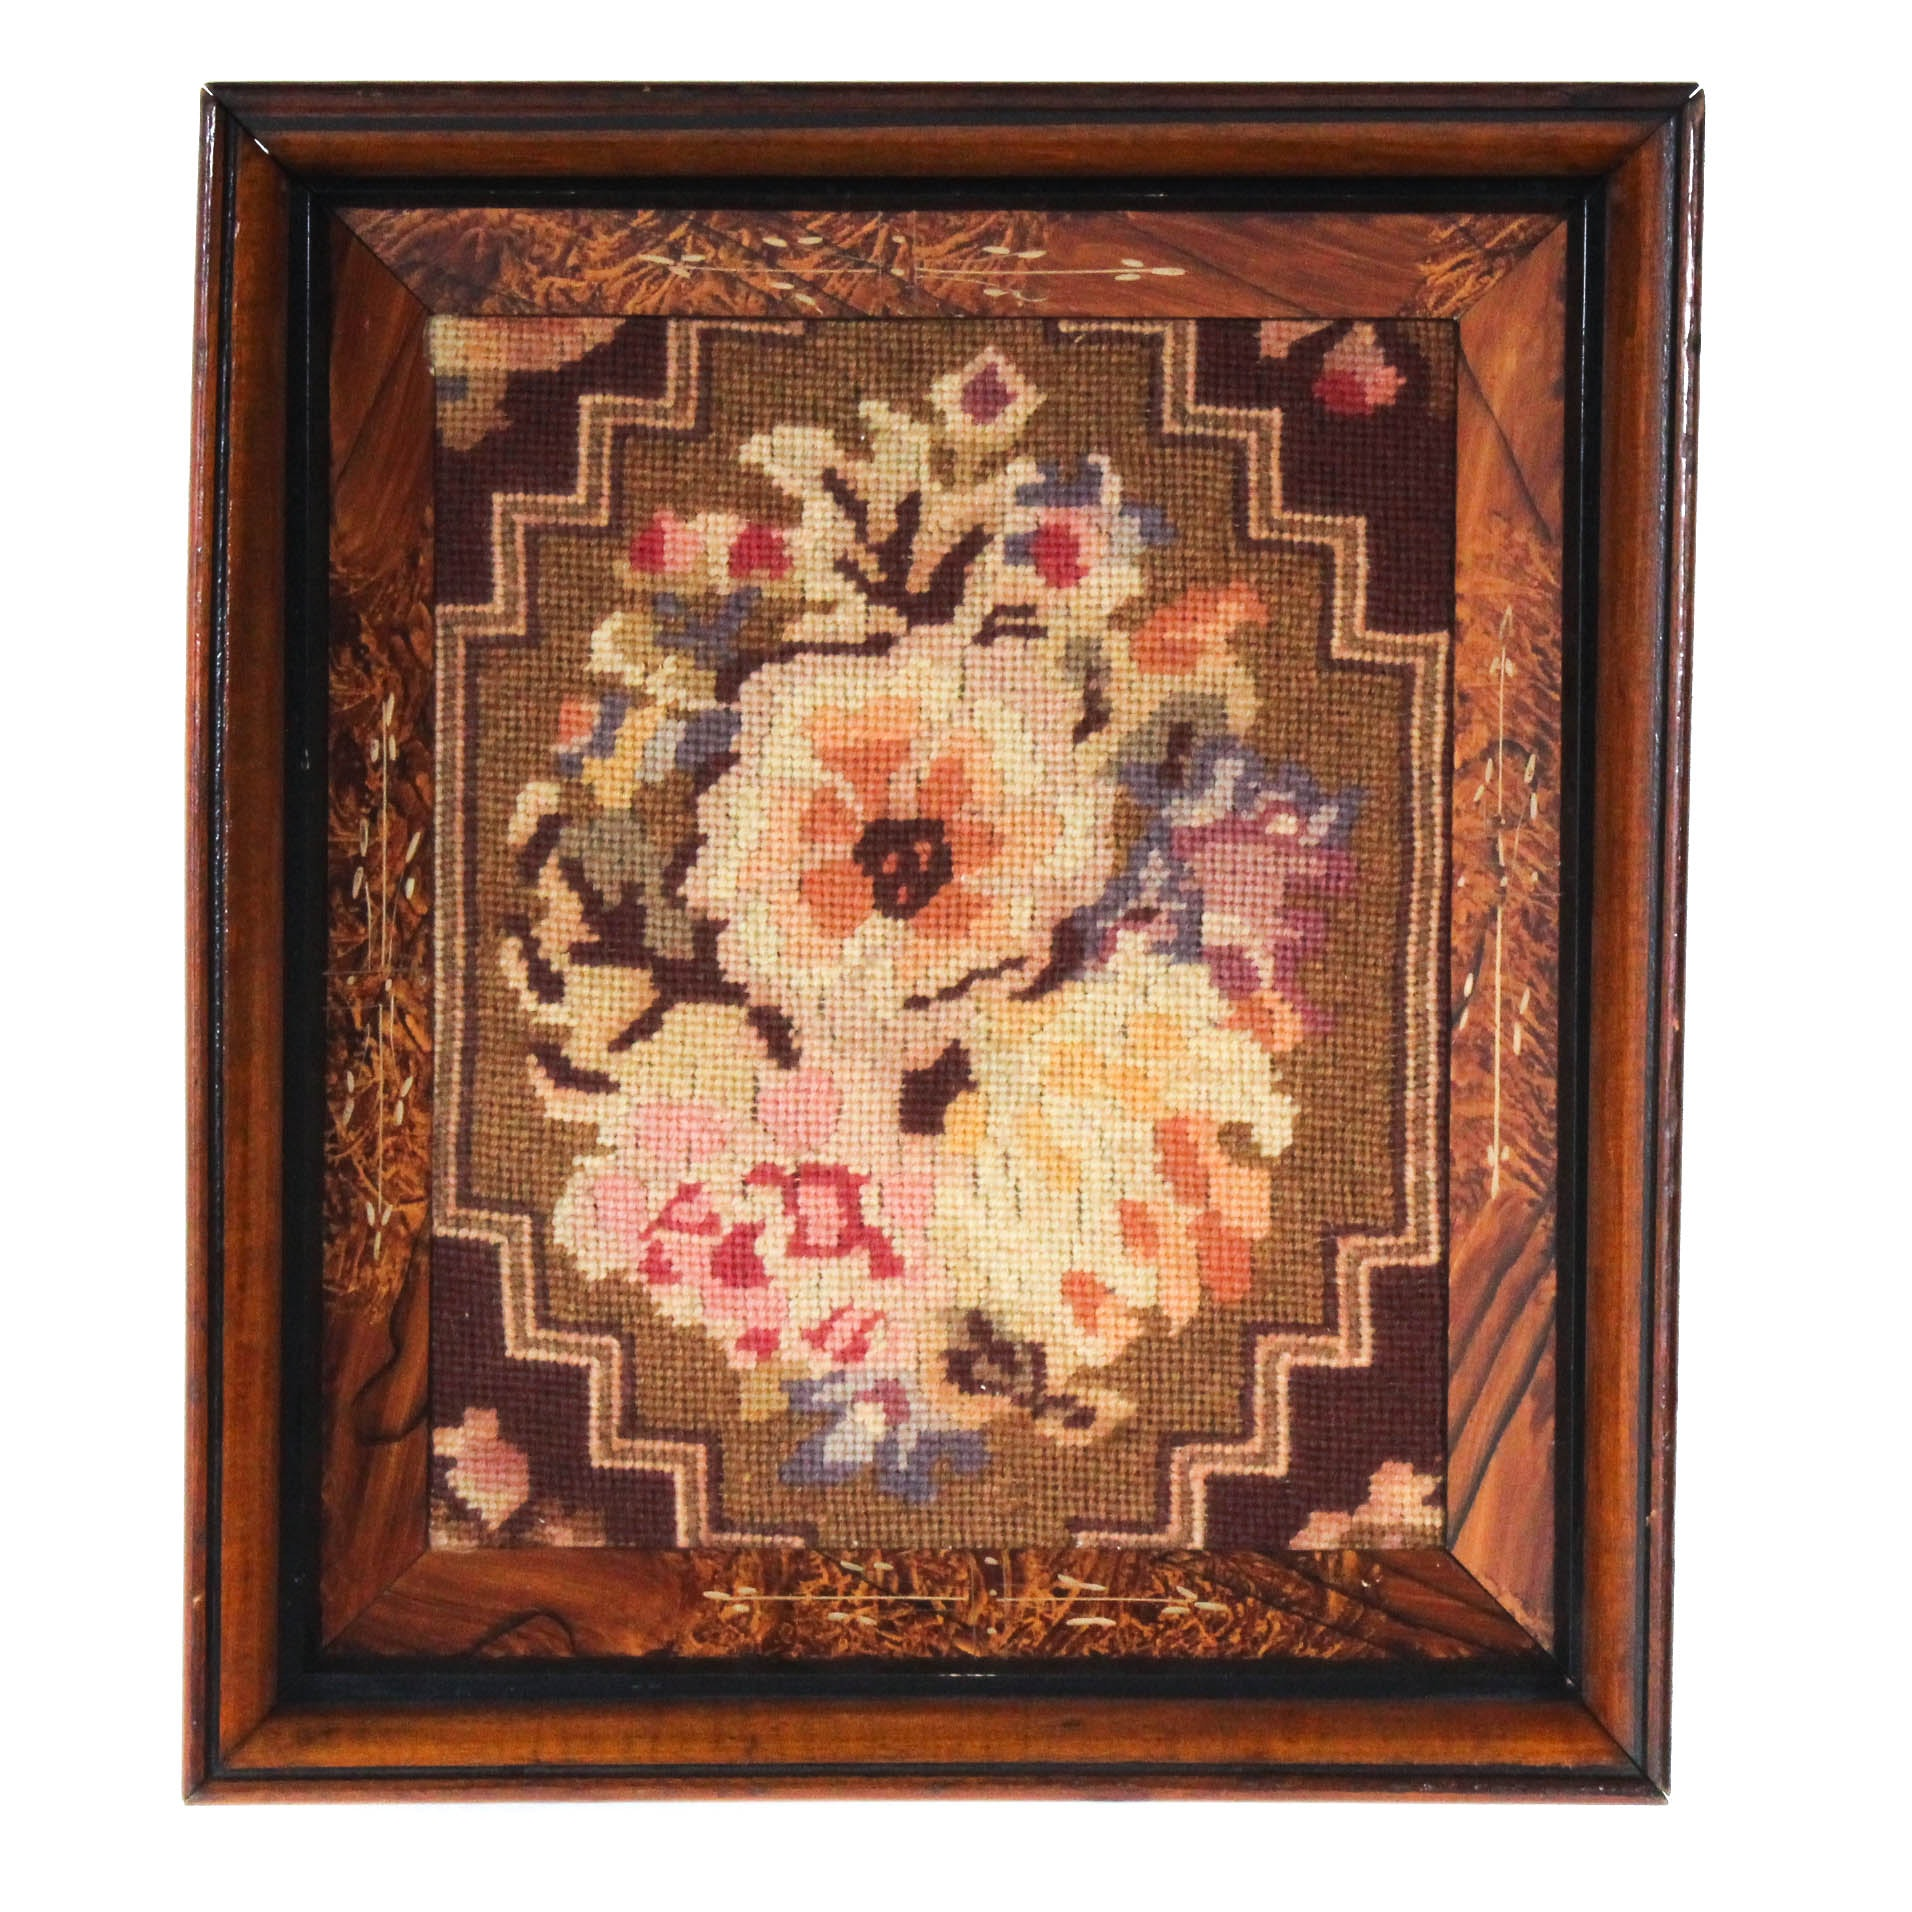 Vintage Needlepoint in Hand-Etched Frame